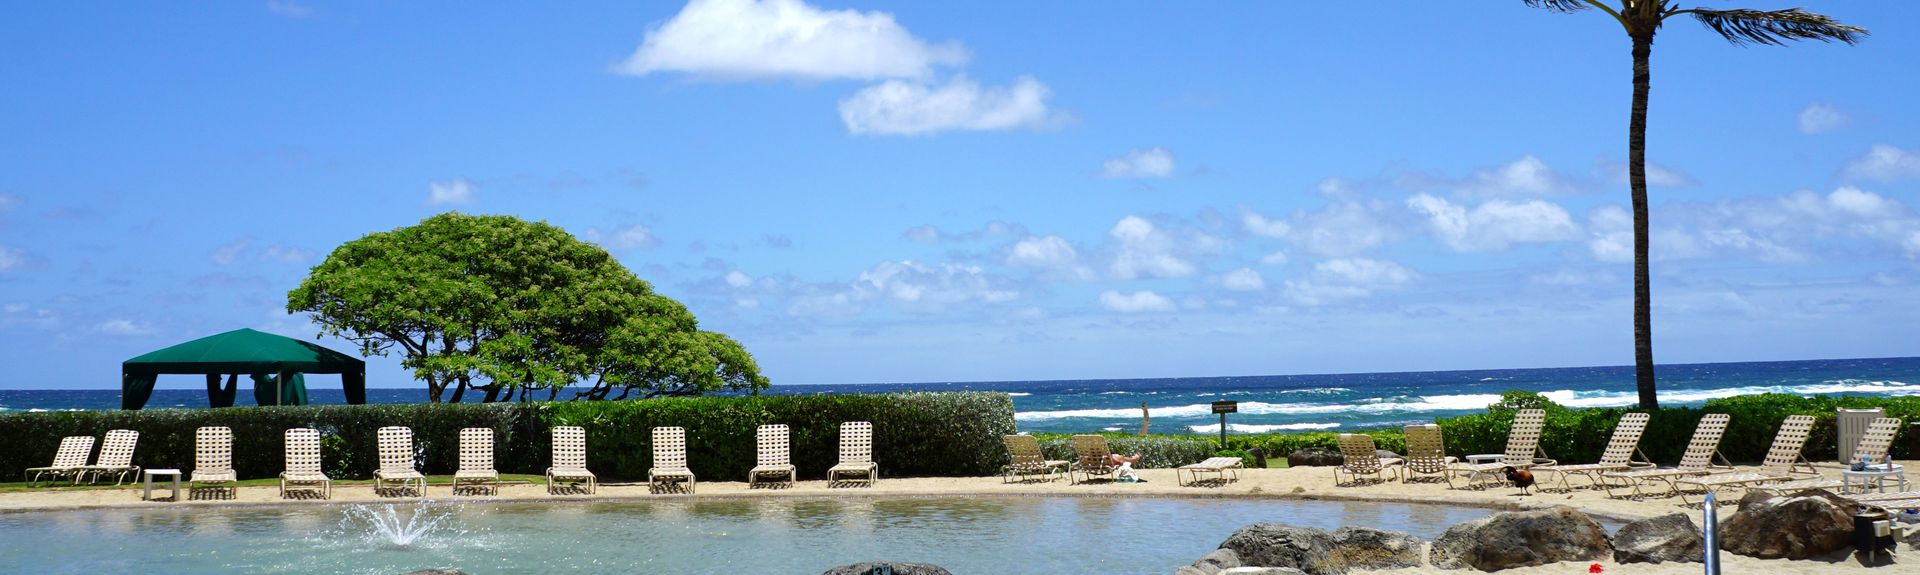 Kauai Beach Resort (Līhuʻe, Hawaii, United States)